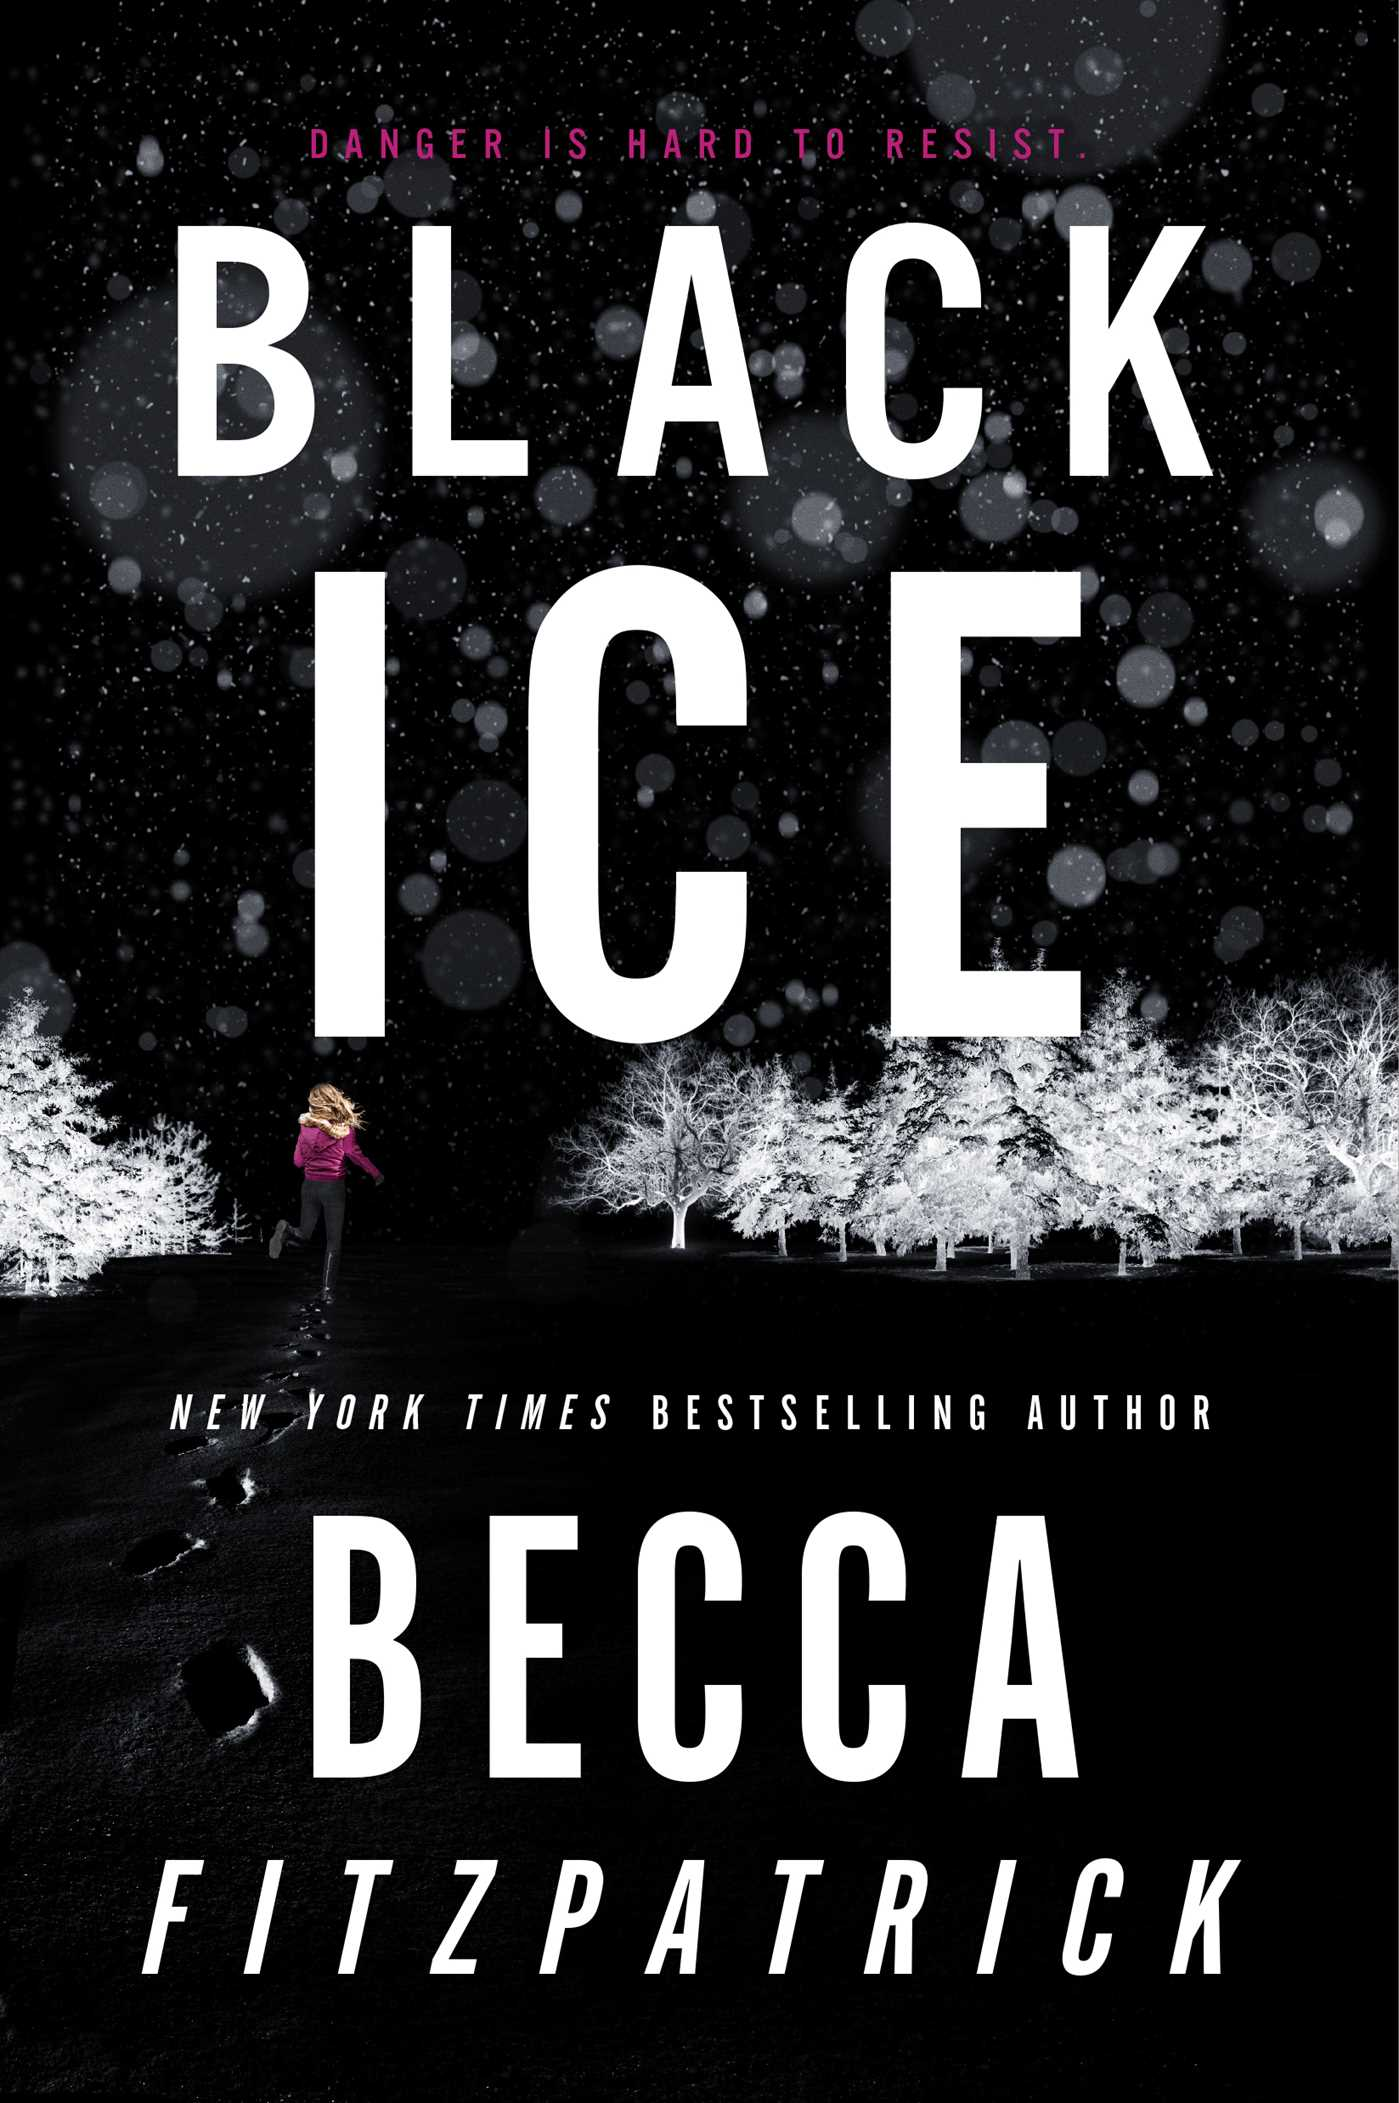 Black ice 9781442474277 hr